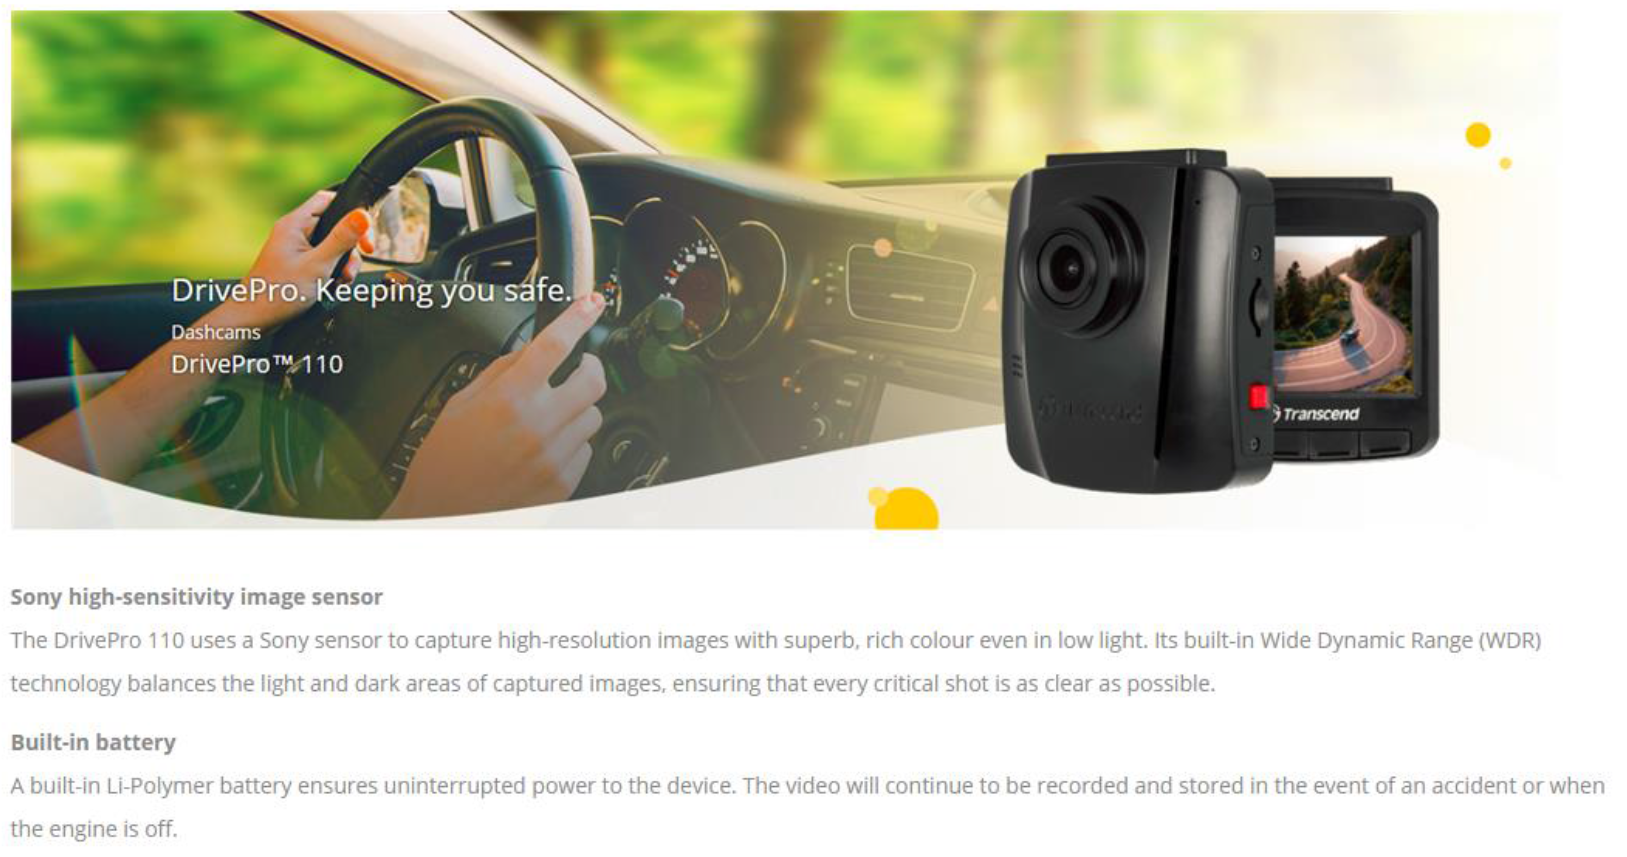 Transcend DrivePro 110 DashCam Suction Mount In-Car Video Recorder